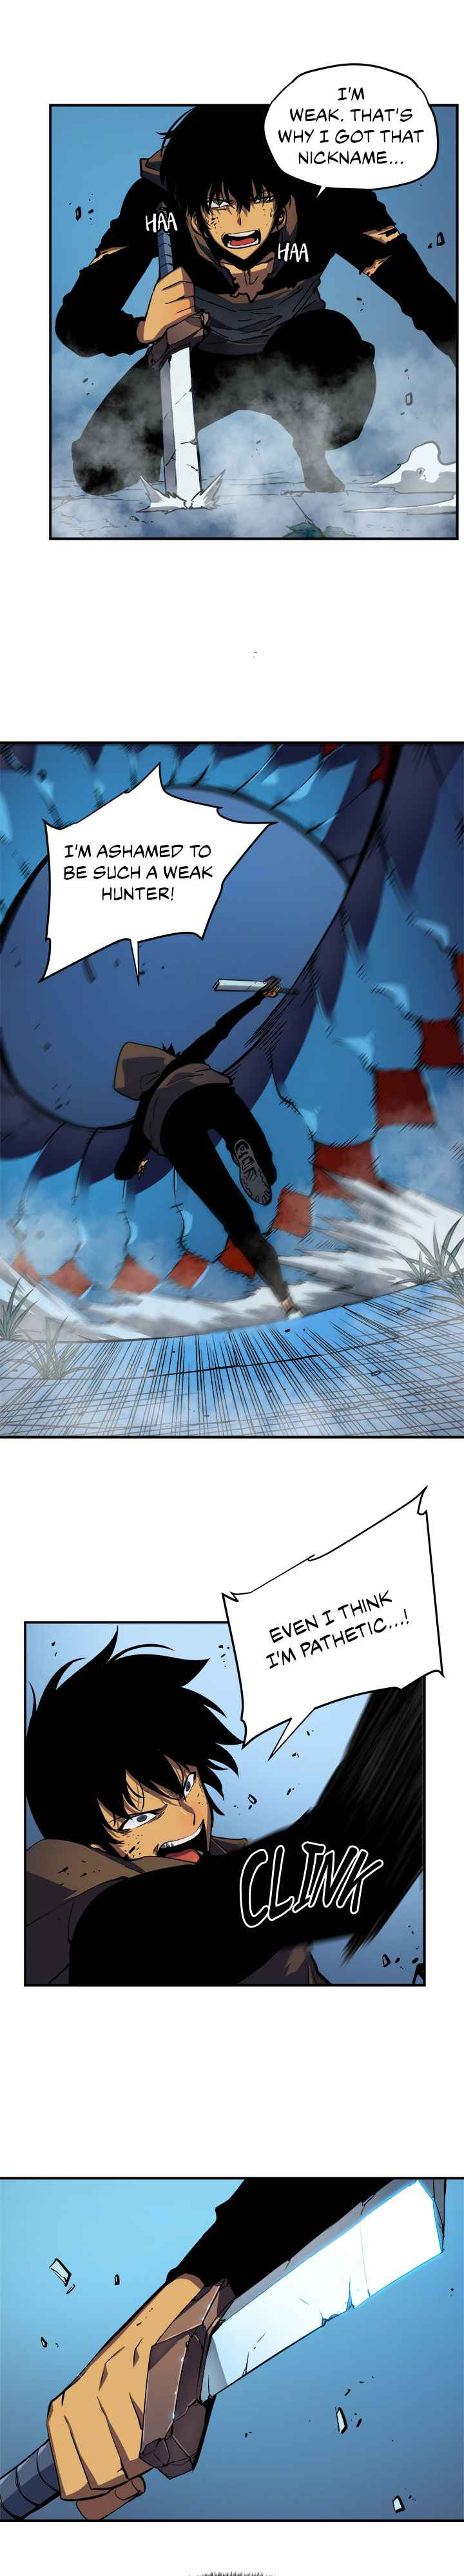 Solo Leveling Chapter 16 Page 15